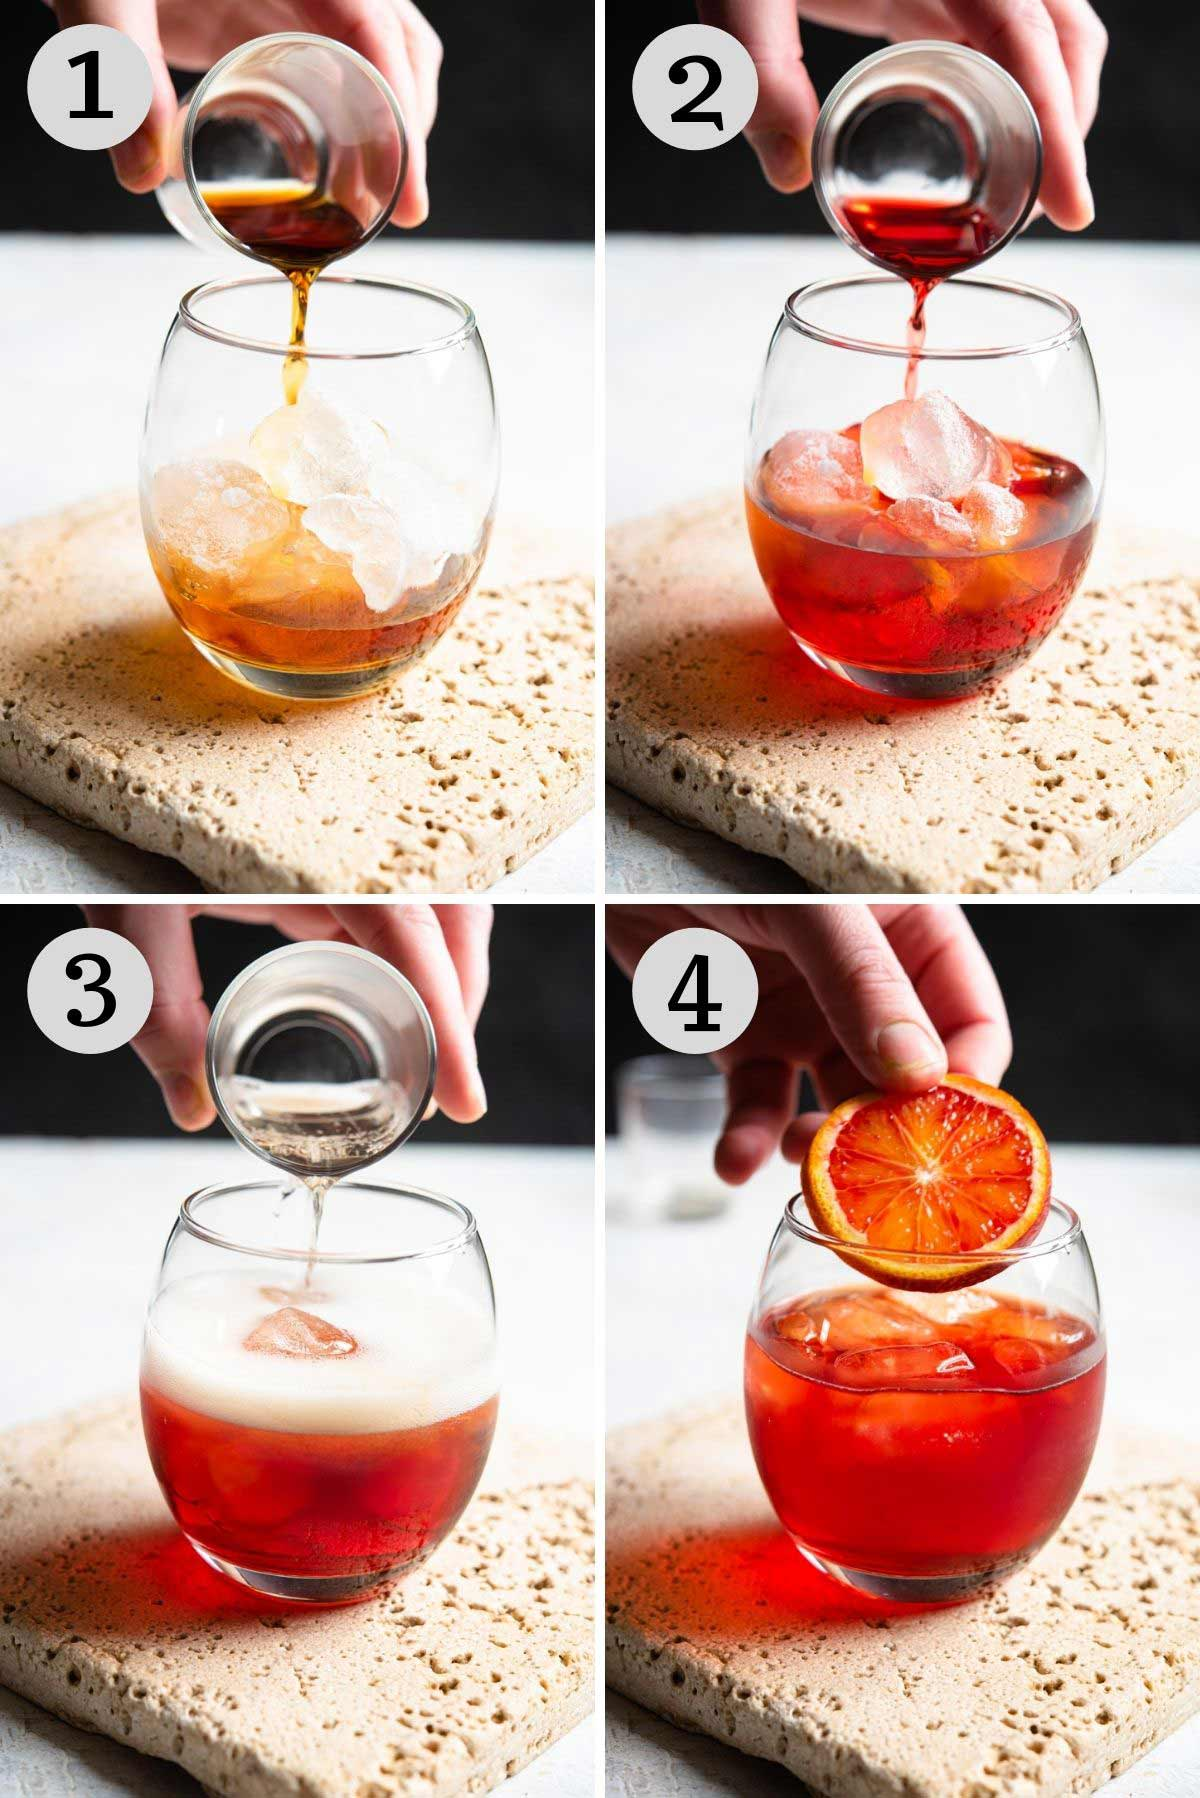 Step by step photos showing how to make a negroni sbagliato